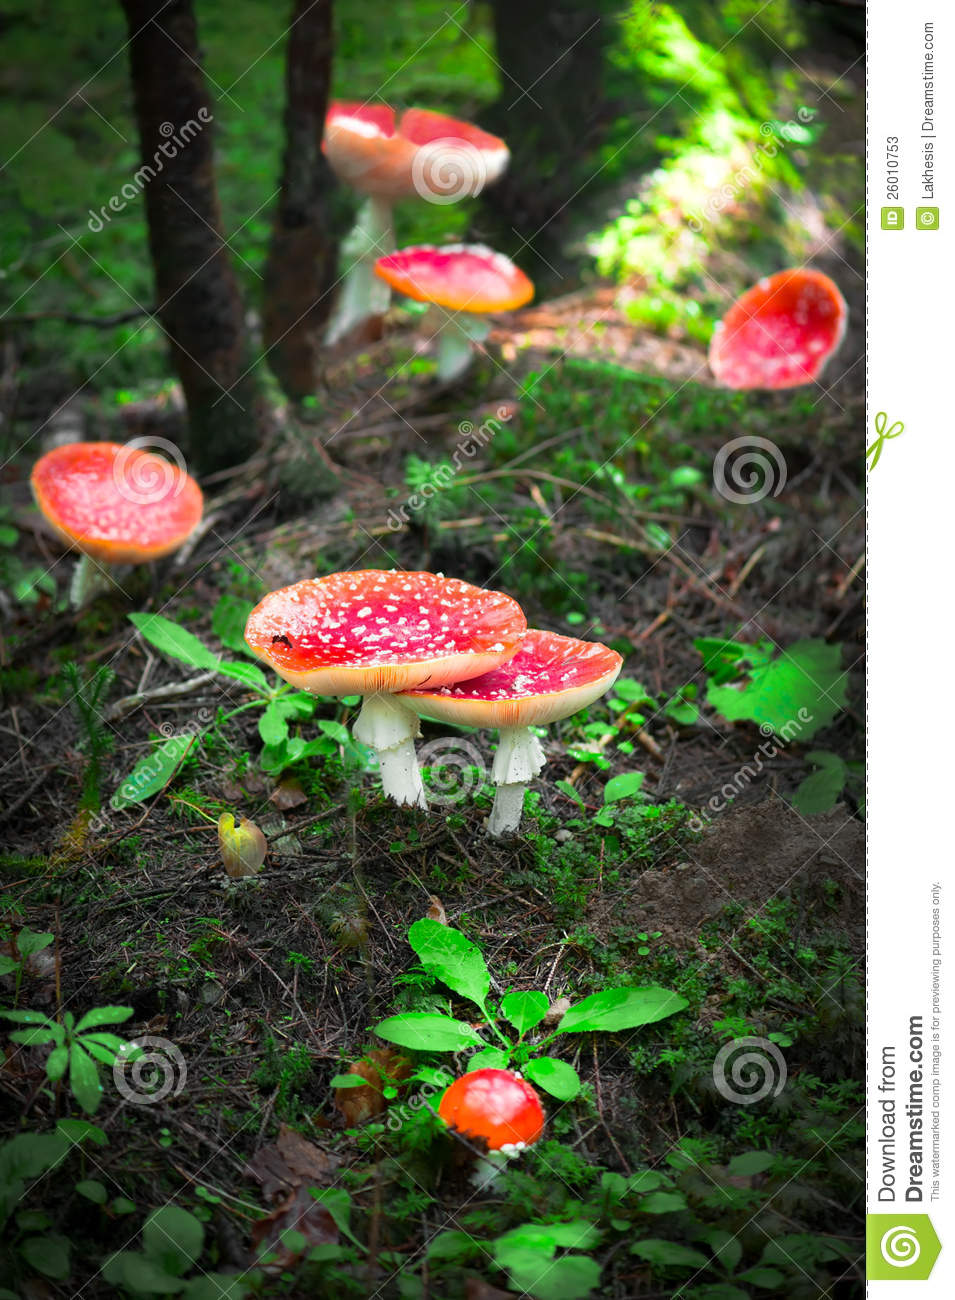 how to eat fly agaric mushrooms